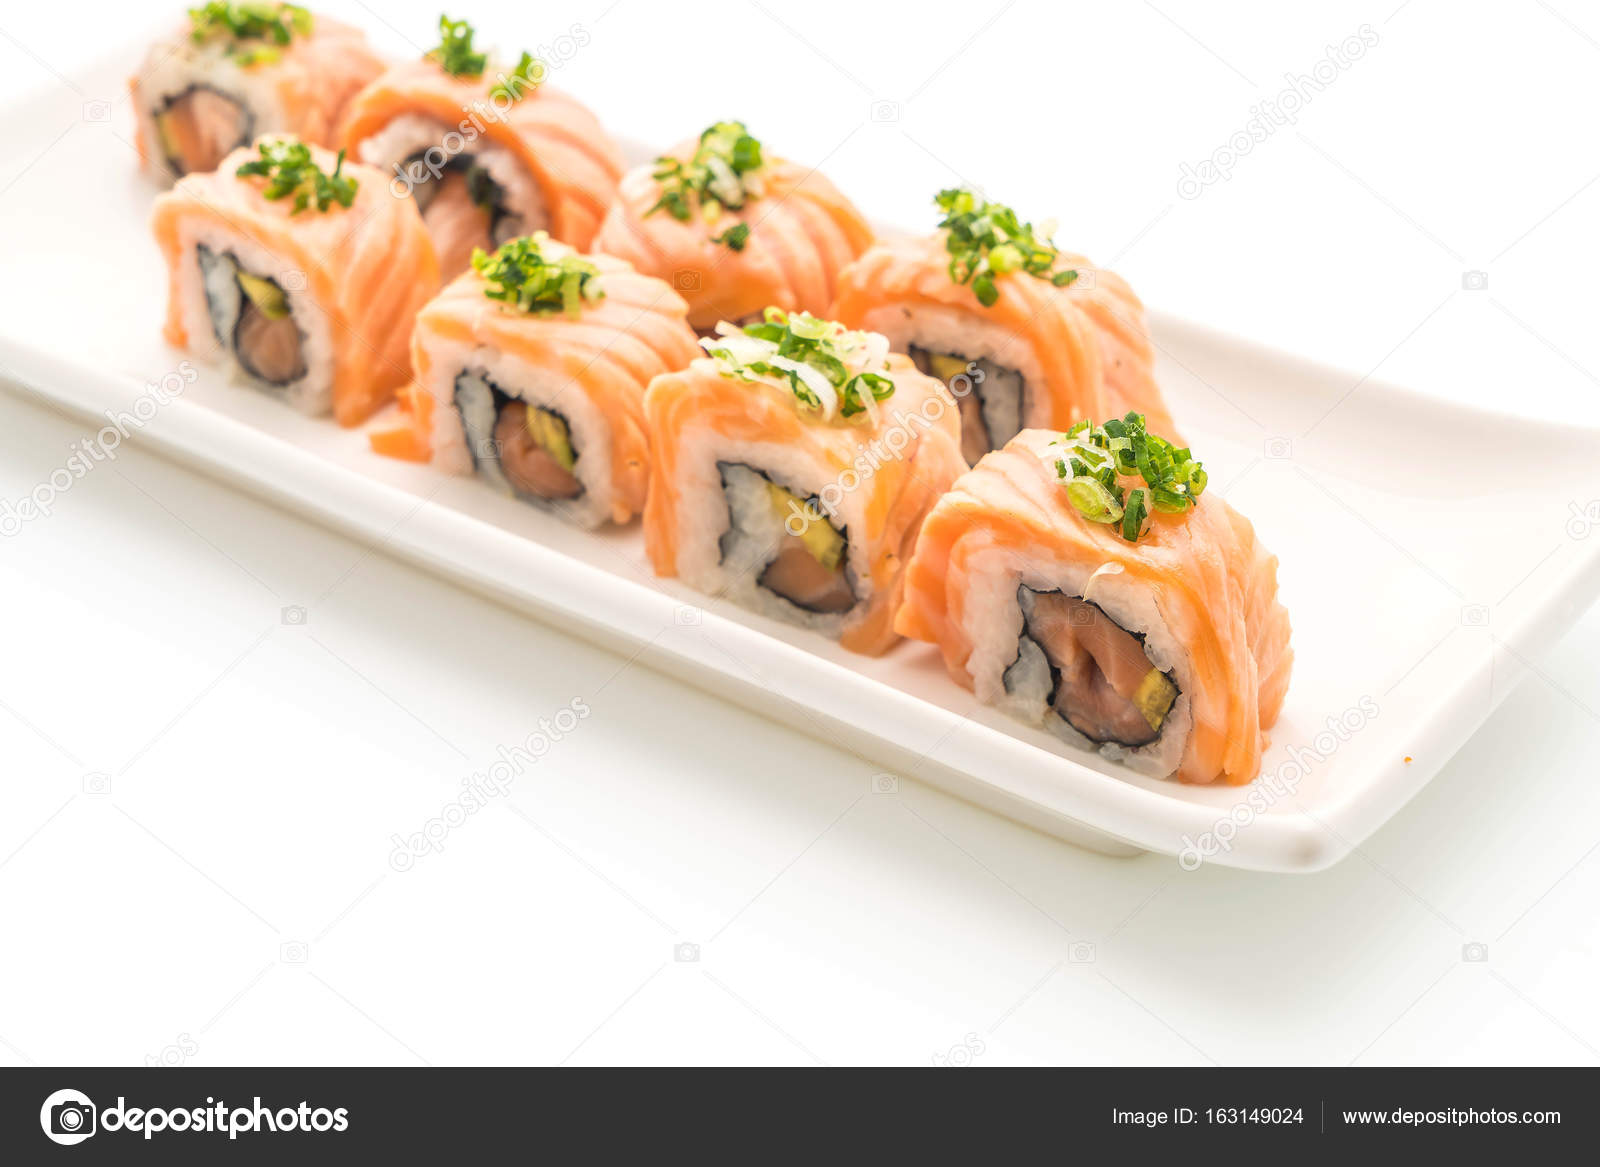 Grilled Salmon Sushi Roll Japanese Food Style Stock Photo C Topntp 163149024